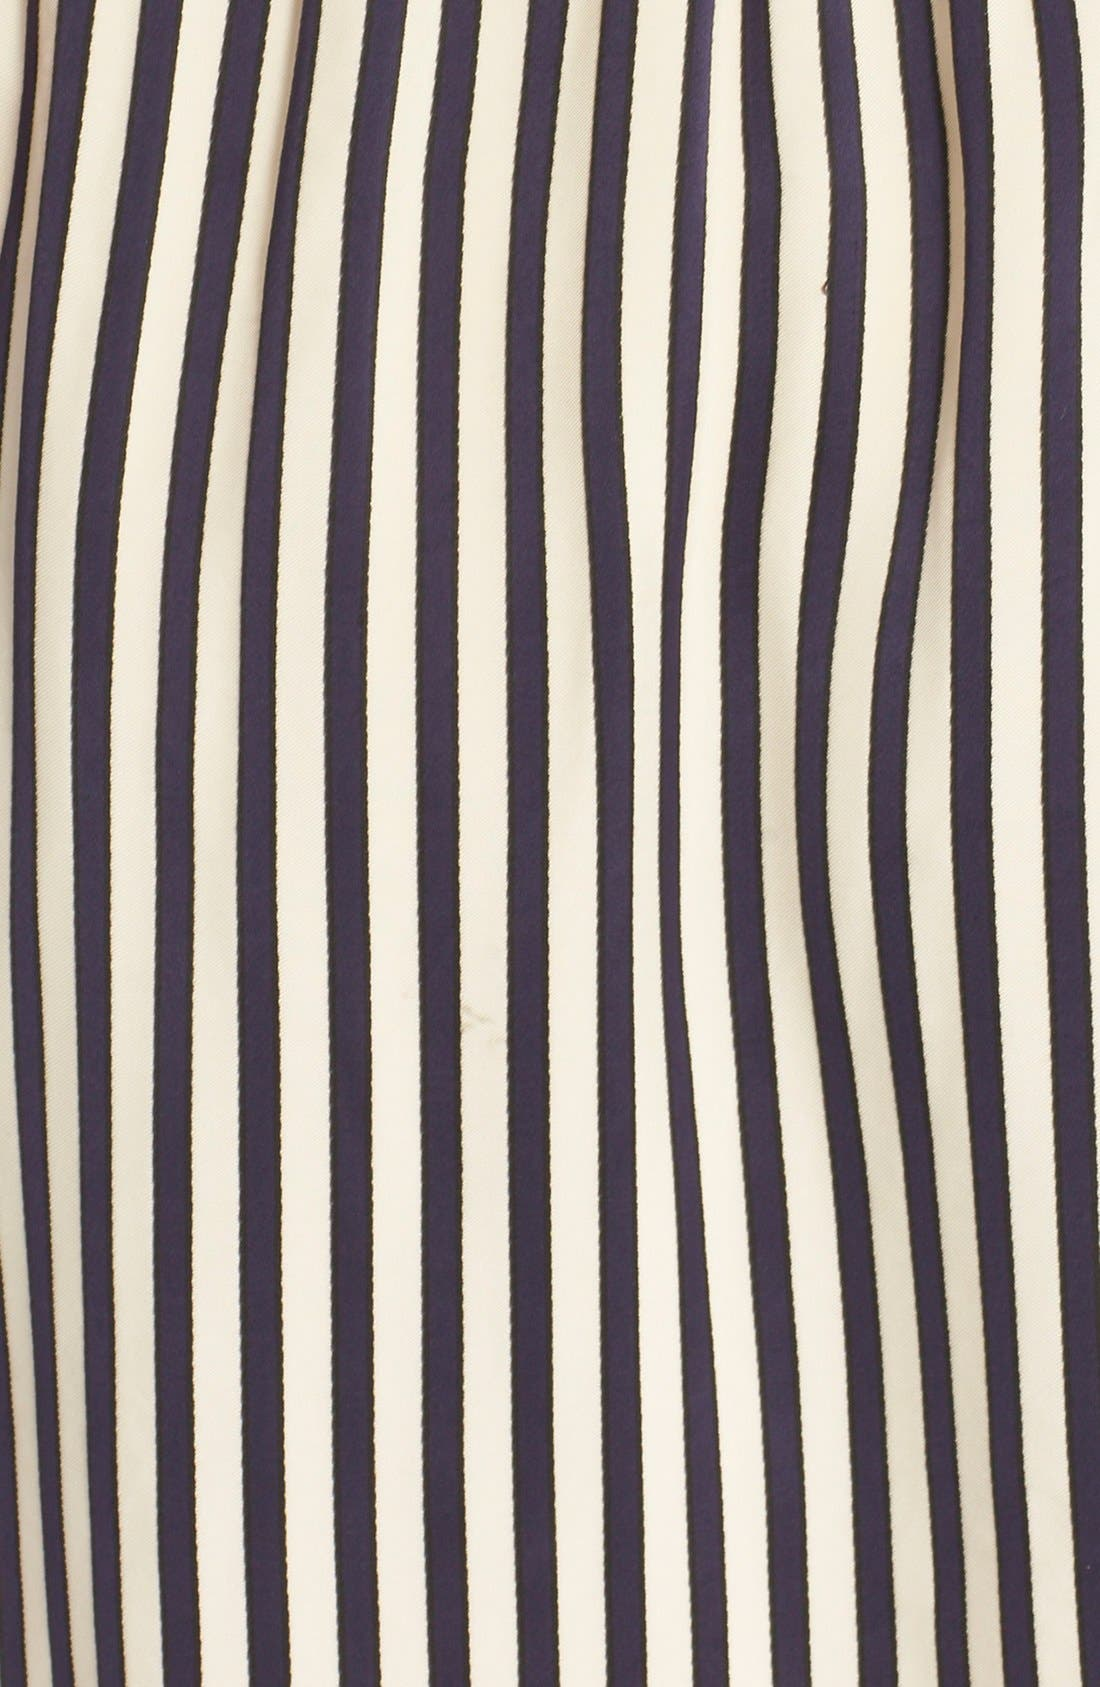 Alternate Image 5  - A.P.C. 'Robe Key West' Stripe Dress